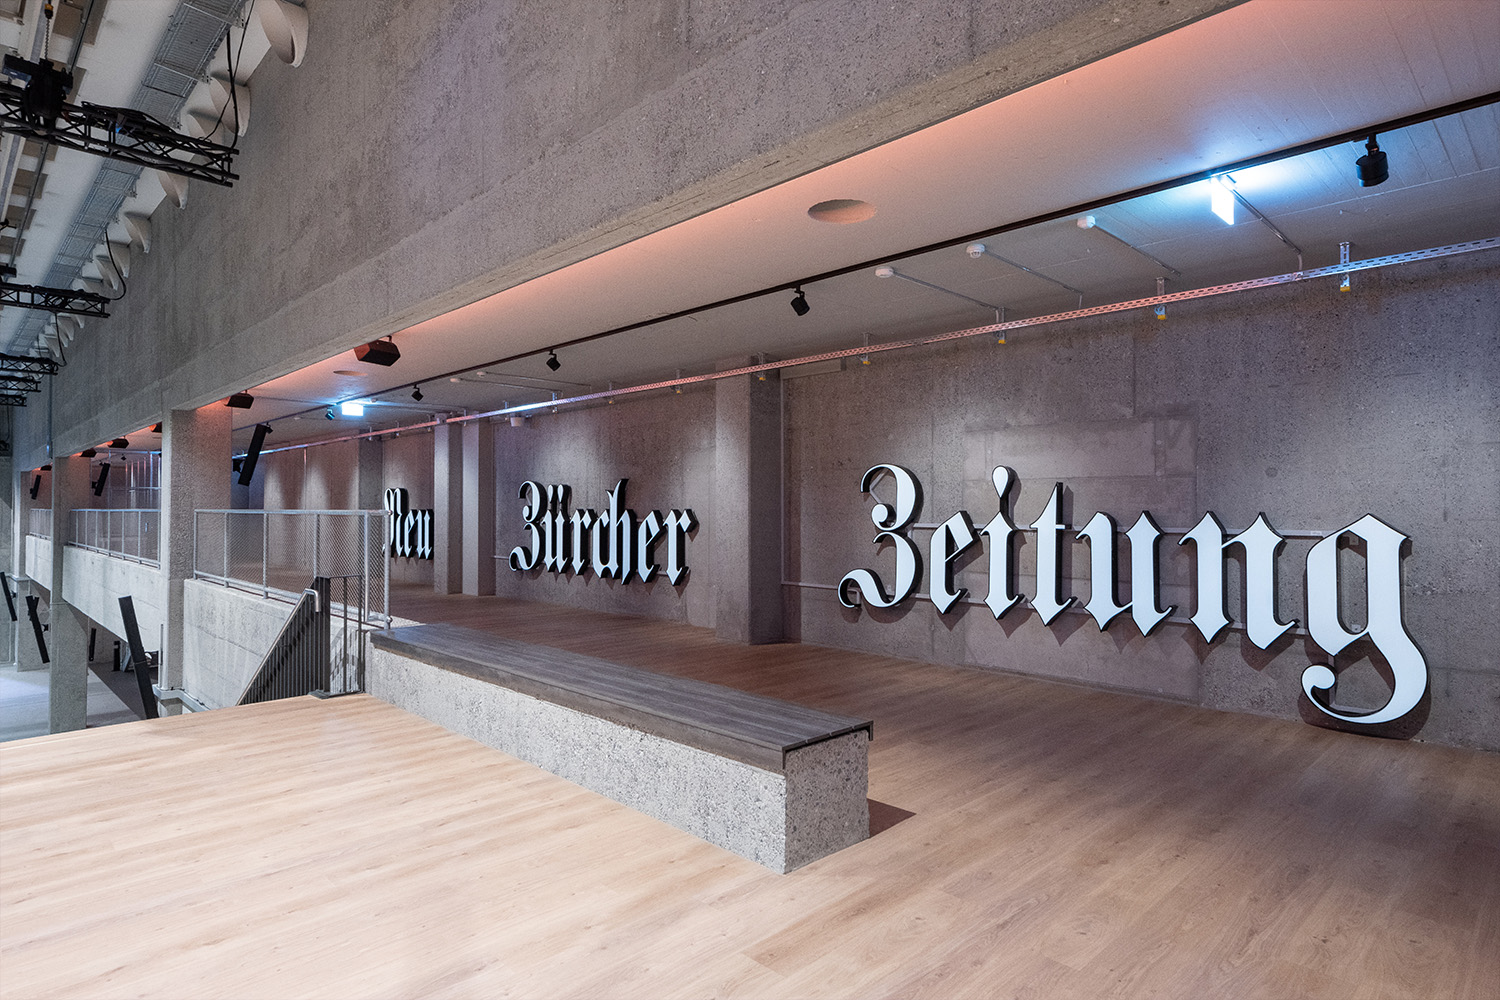 The logo of «Neue Zürcher Zeitung» pays homage to the history of the hall. Daniel Werder